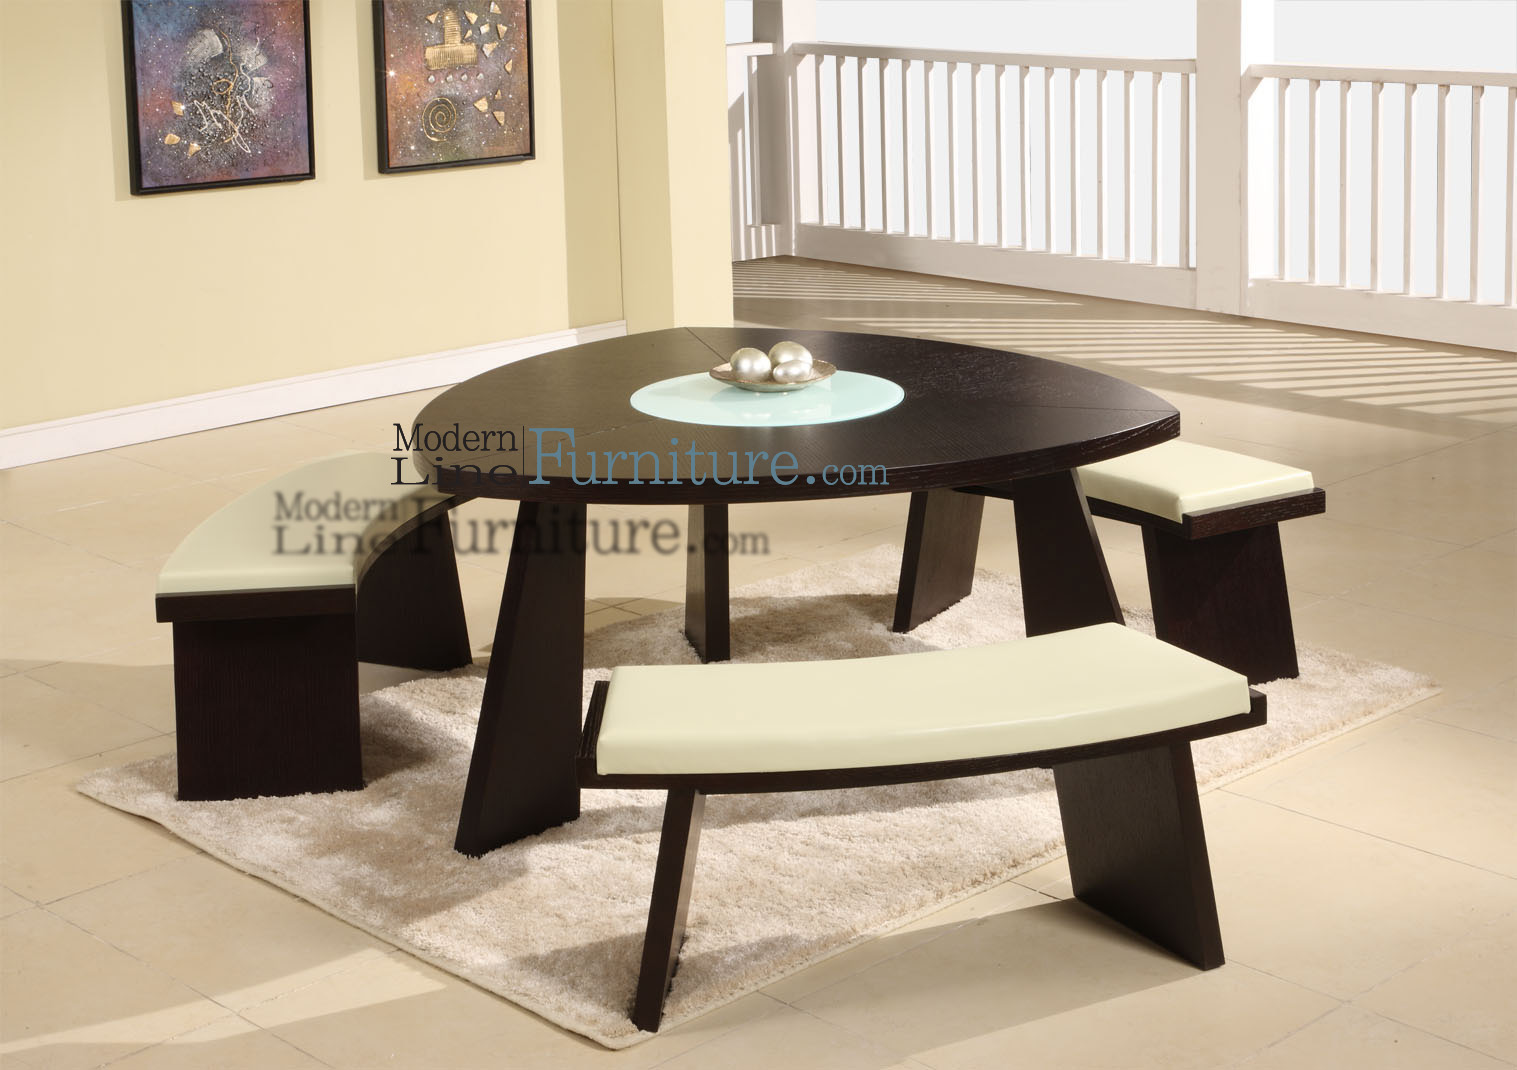 modern line furniture - commercial furniture - custom made